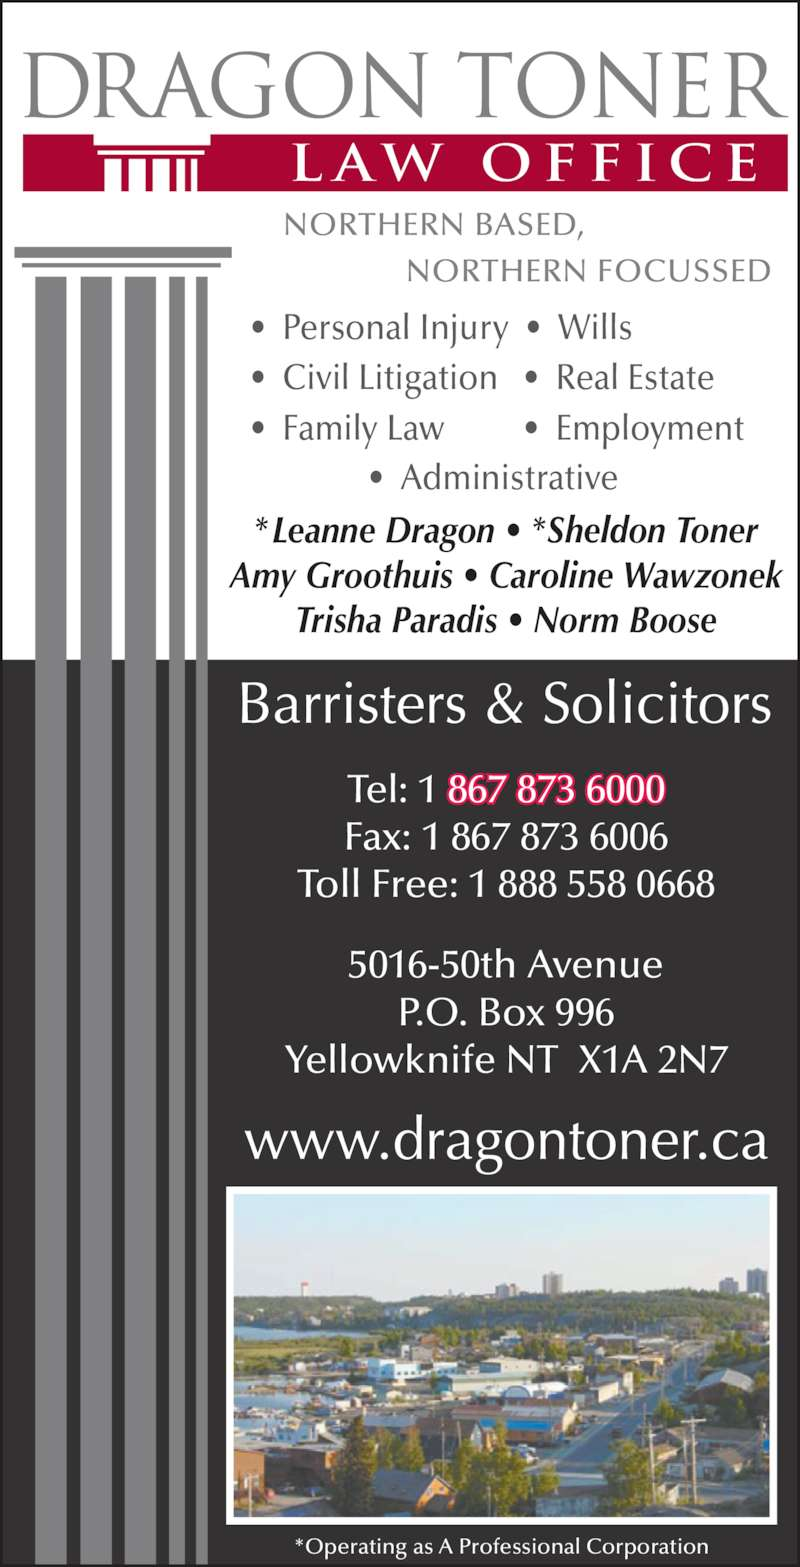 Dragon Toner Law Office (867-873-6000) - Display Ad - ?  Civil Litigation   ?  Real Estate   ?  Personal Injury  ?  Wills   ?  Family Law         ?  Employment  *Leanne Dragon ? *Sheldon Toner Amy Groothuis ? Caroline Wawzonek Trisha Paradis ? Norm Boose 5016-50th Avenue P.O. Box 996 Yellowknife NT  X1A 2N7 *Operating as A Professional Corporation Tel: 1 867 873 6000 Fax: 1 867 873 6006 Toll Free: 1 888 558 0668 ?  Administrative